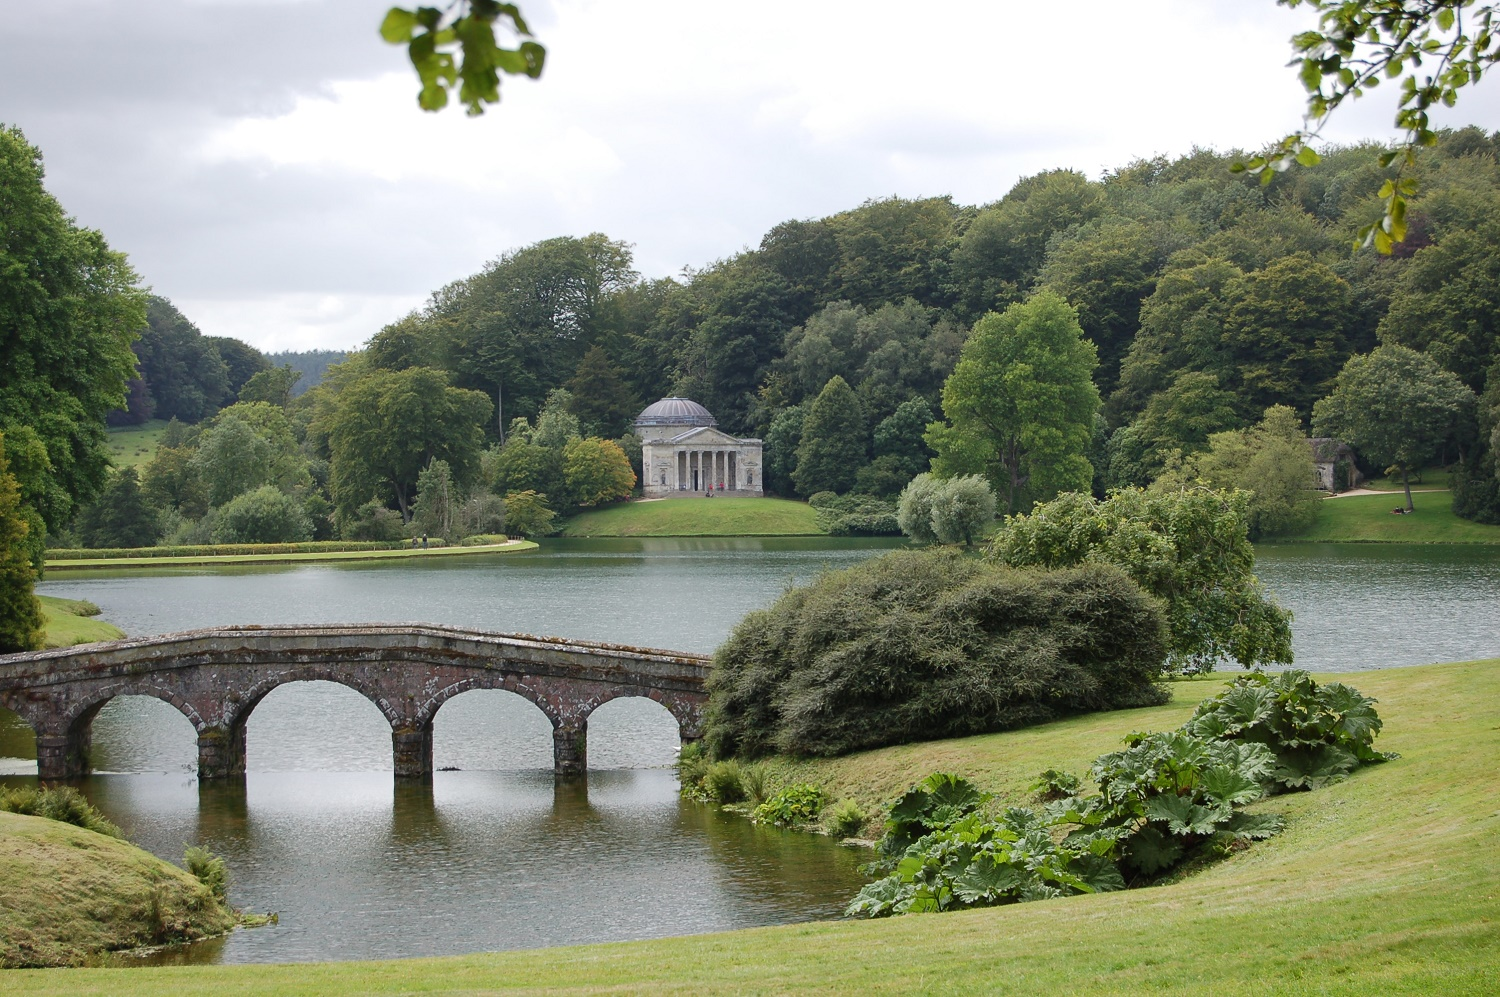 Great Circle Route, South West England Walks & Gardens, Stourhead Gardens